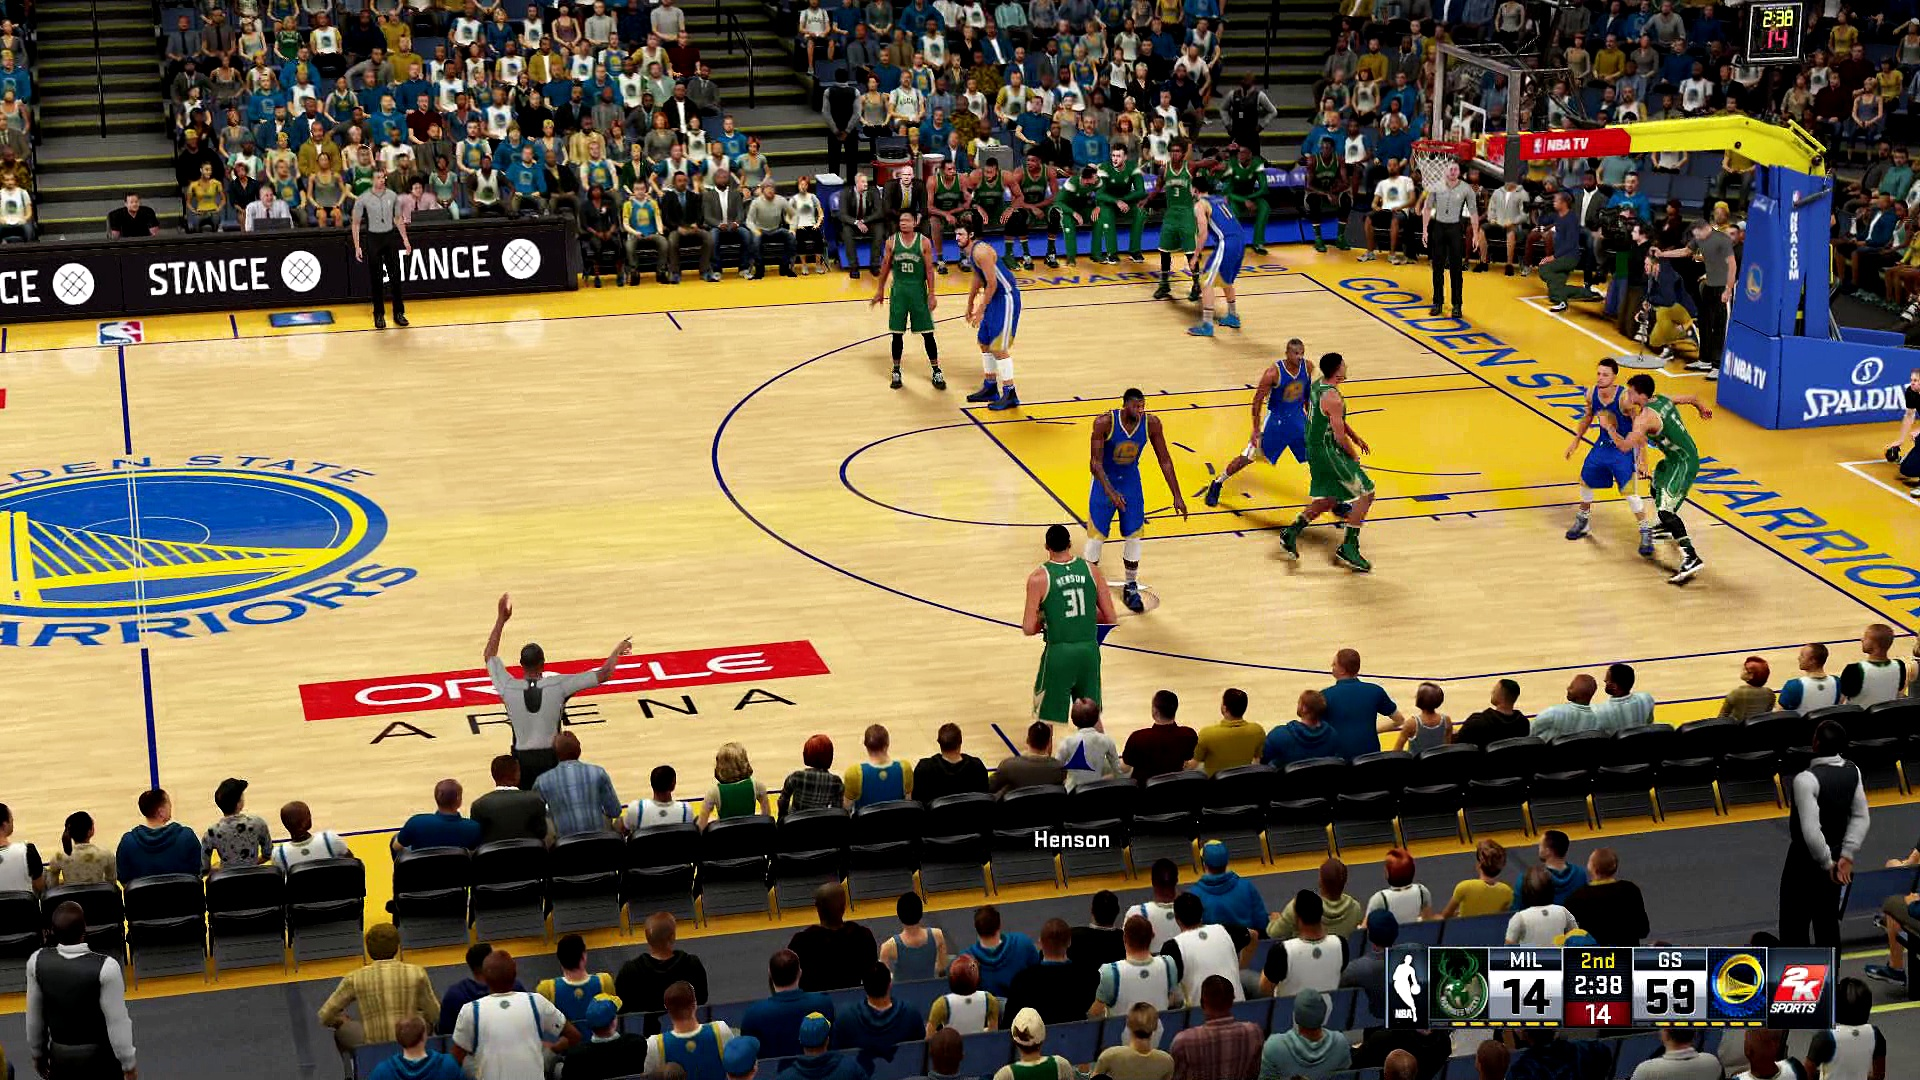 NBA 2K16 UNLIMITED VC GLITCH PATCHED!! (WITH PROOF) ** 2K-NEWS **